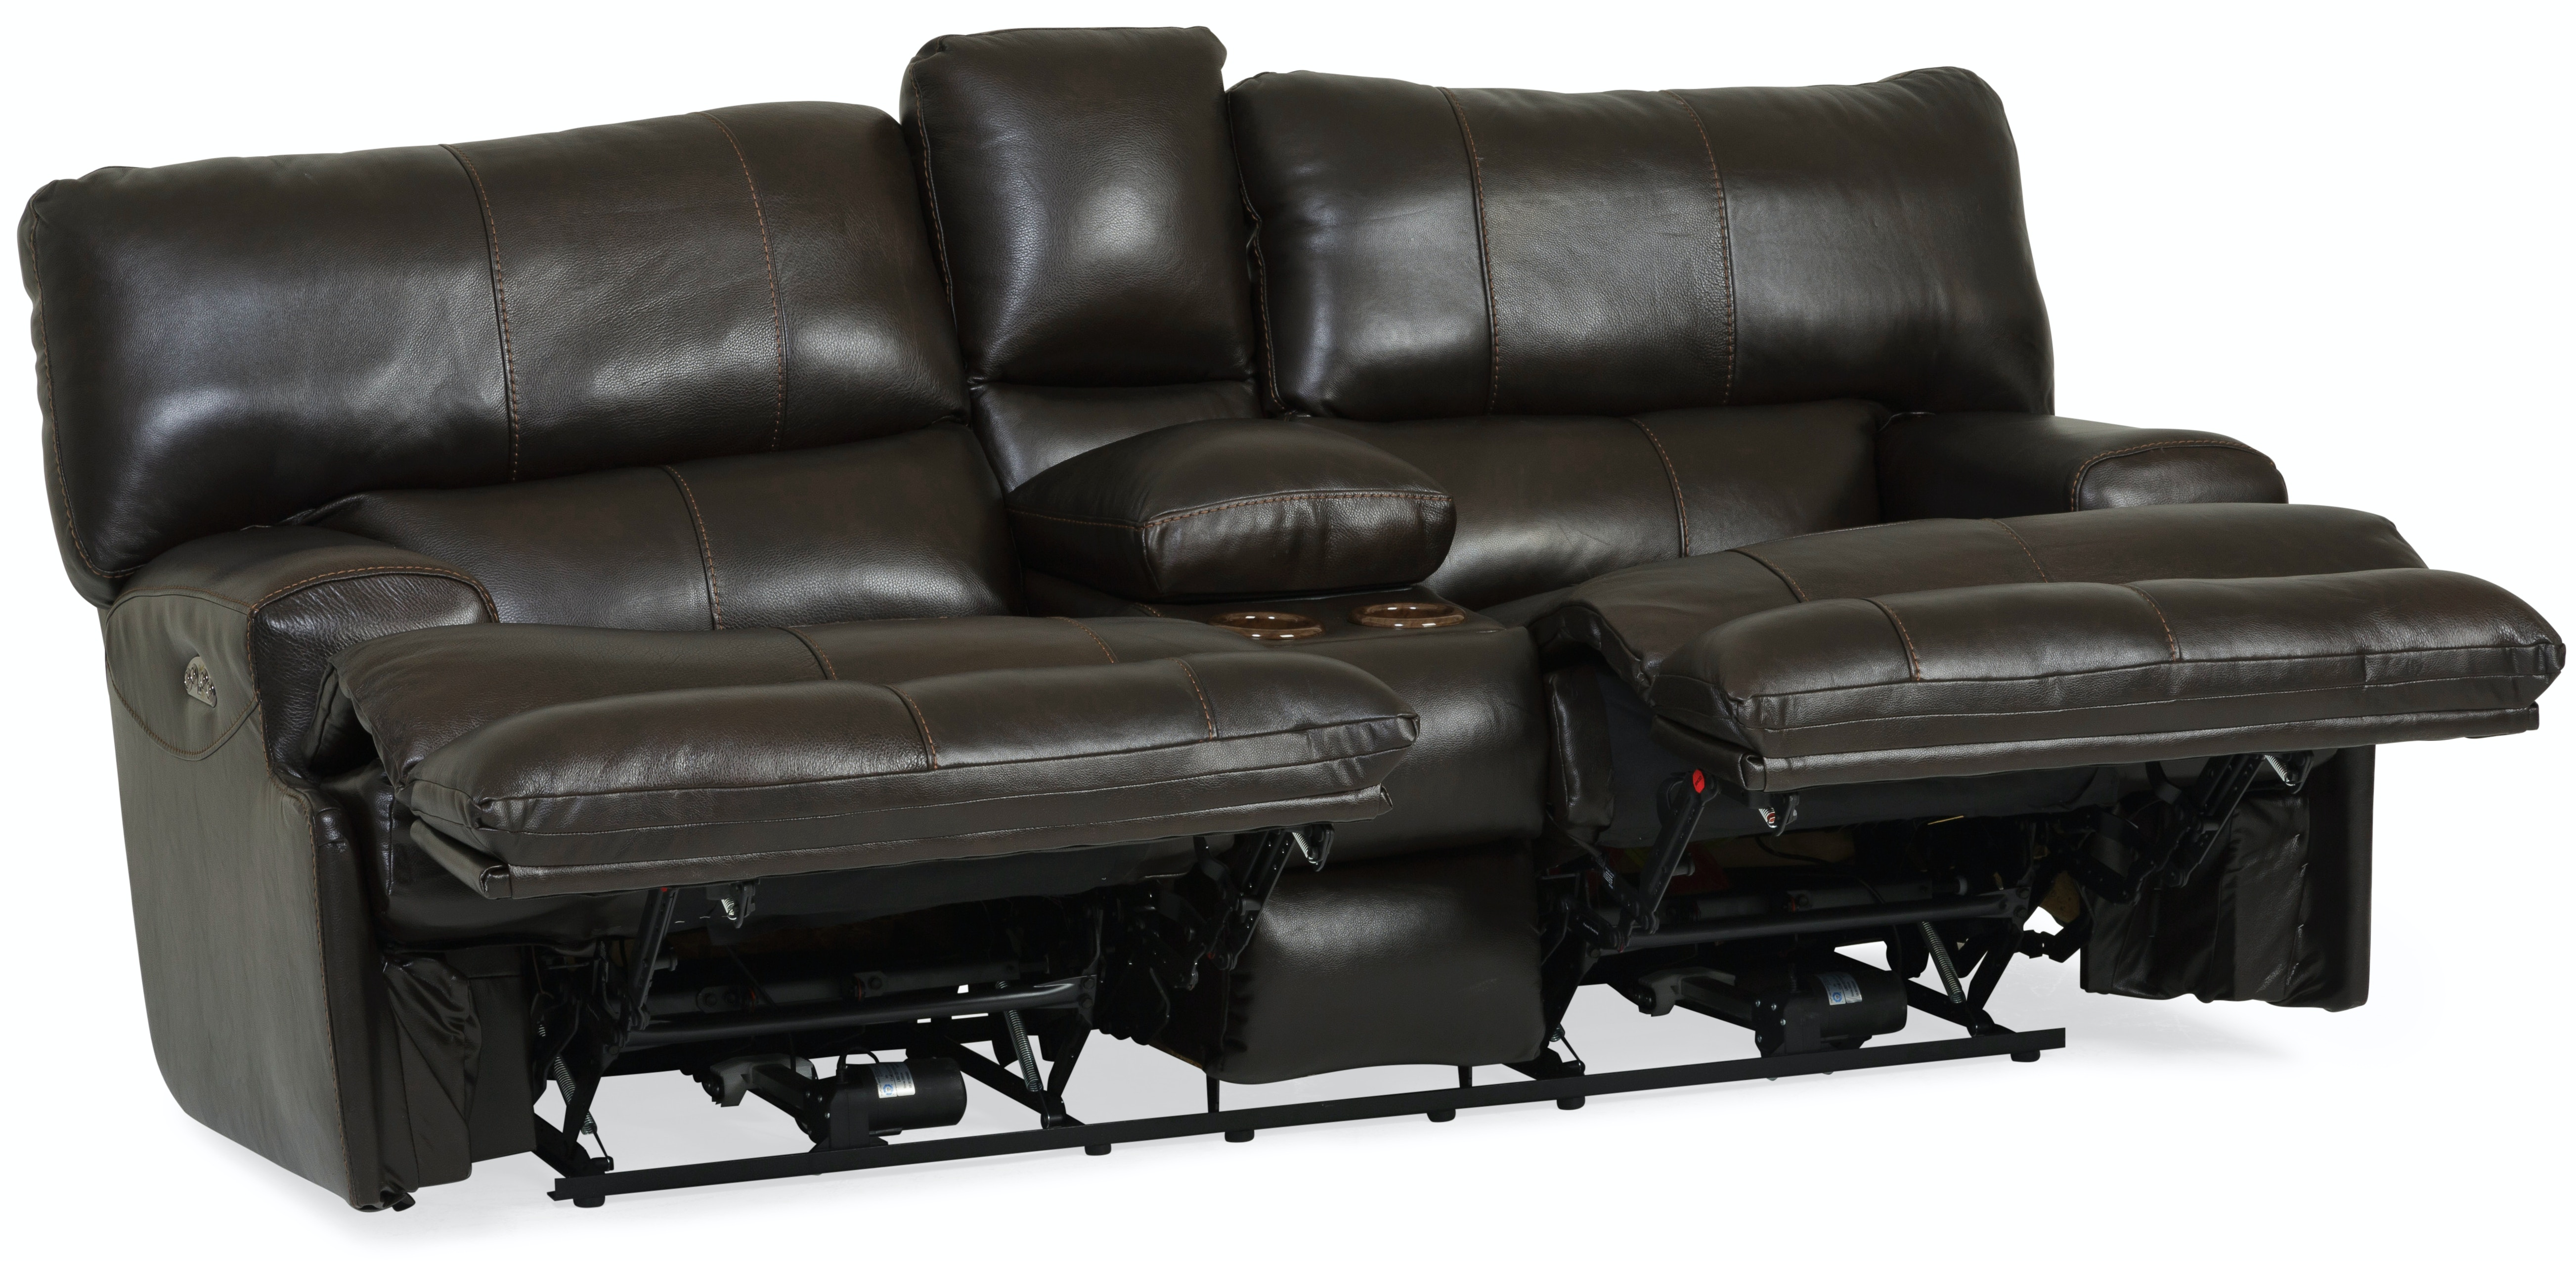 Whiskey Leather Power Reclining Console Loveseat ST:500228